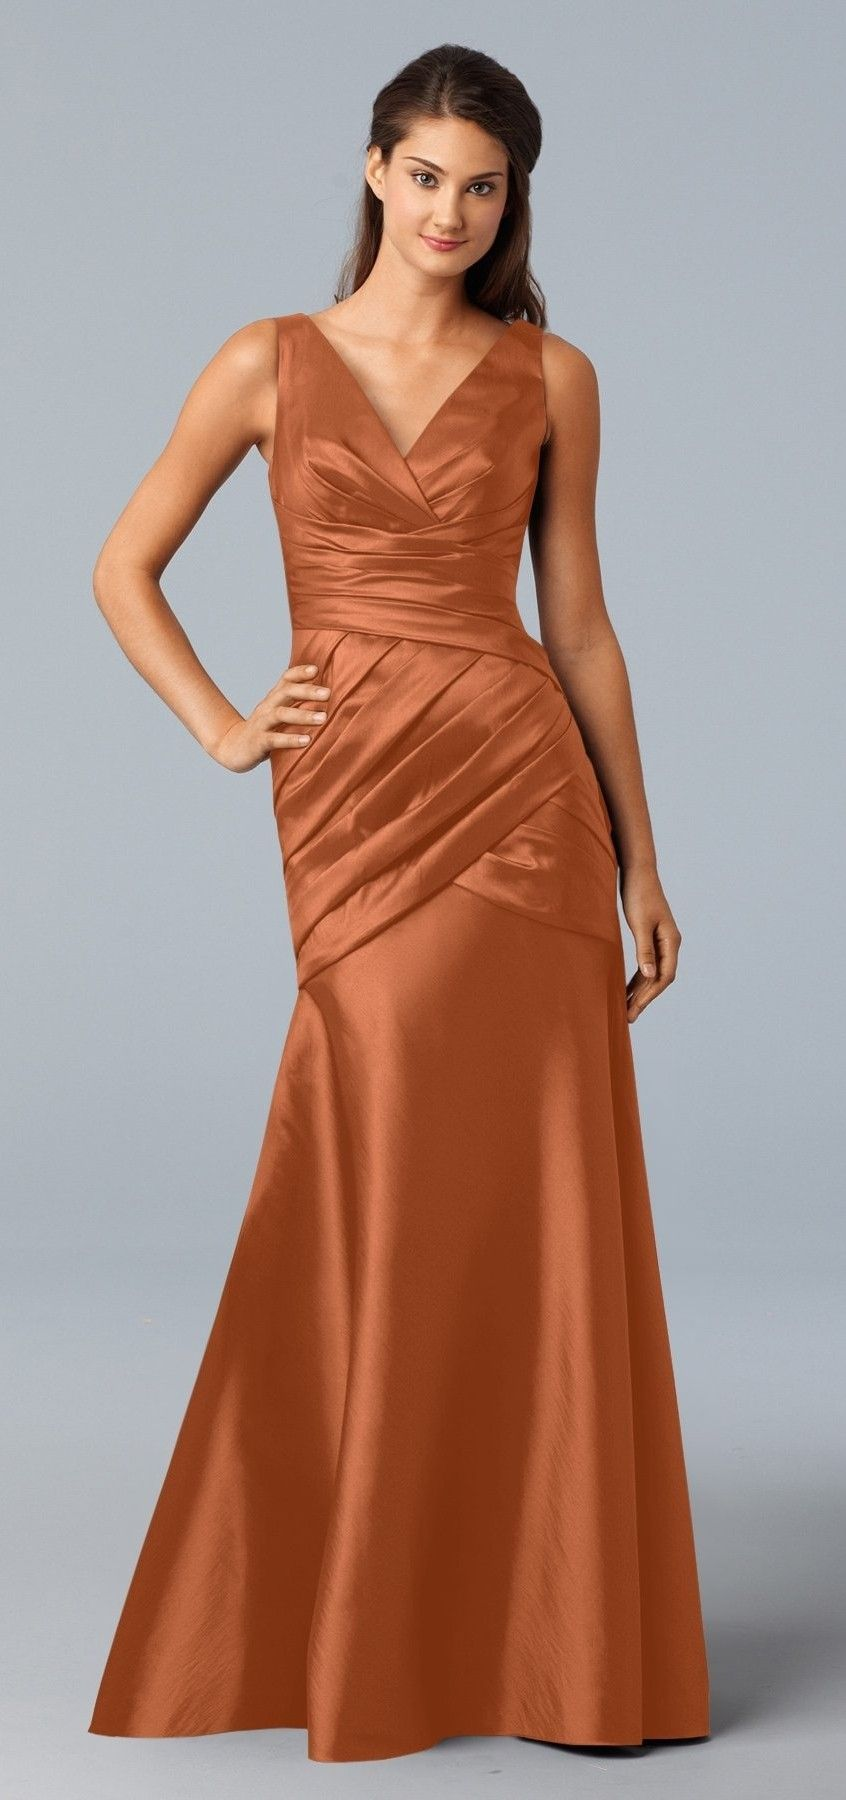 1000  images about Bridesmaid Dresses on Pinterest - Peacocks ...